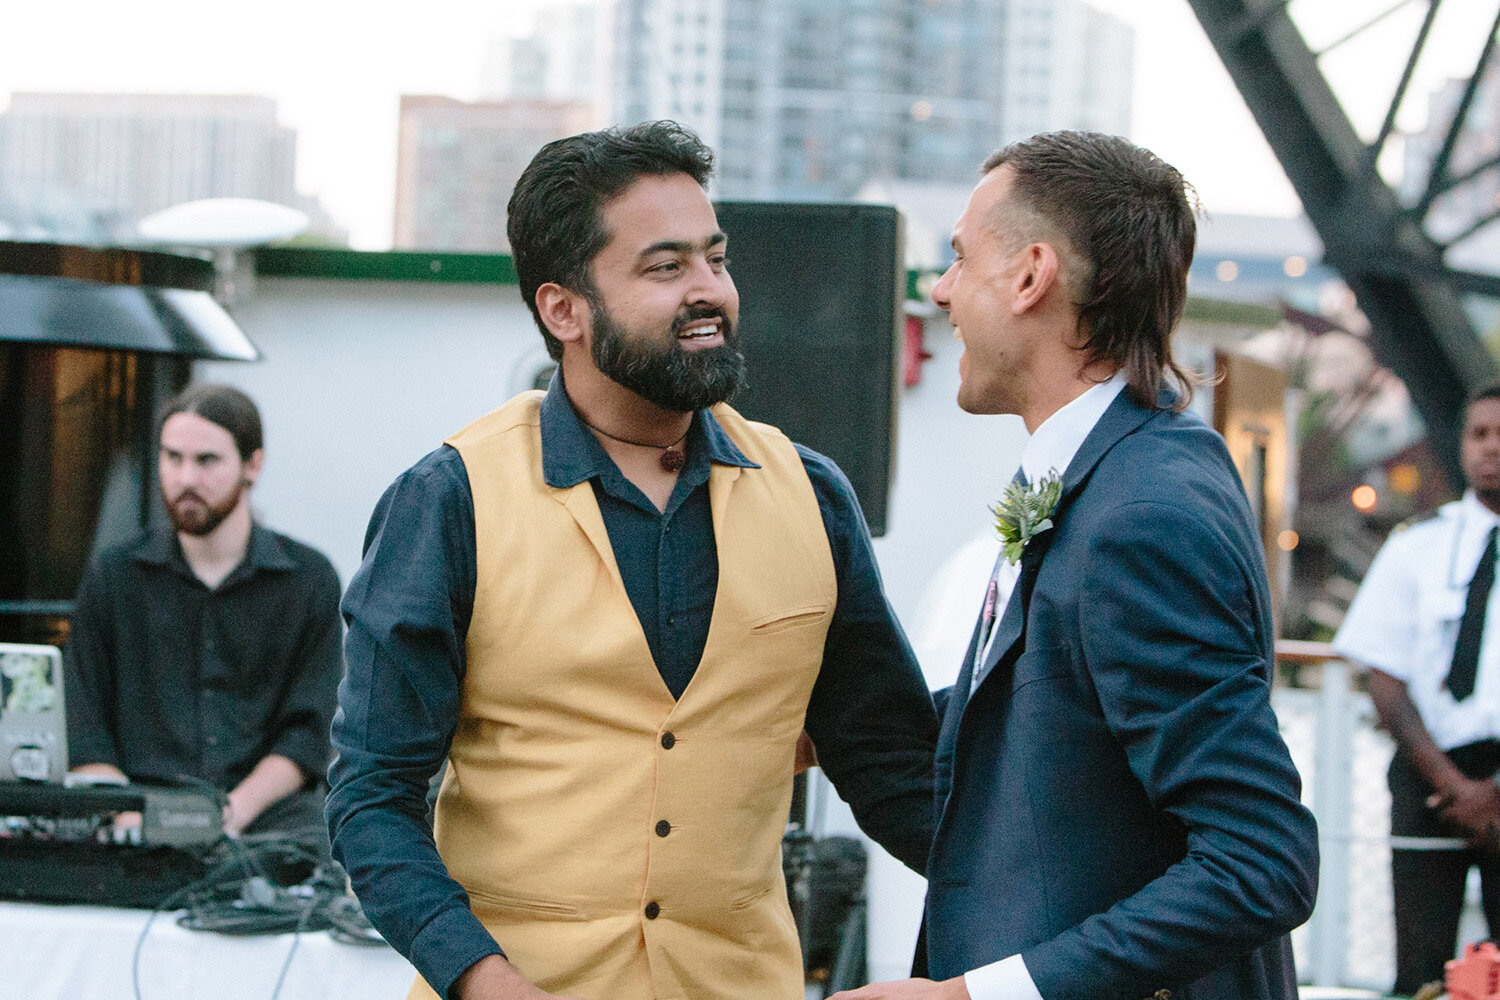 groom-and-friend-chatting-chicagos-leading-lady.jpg